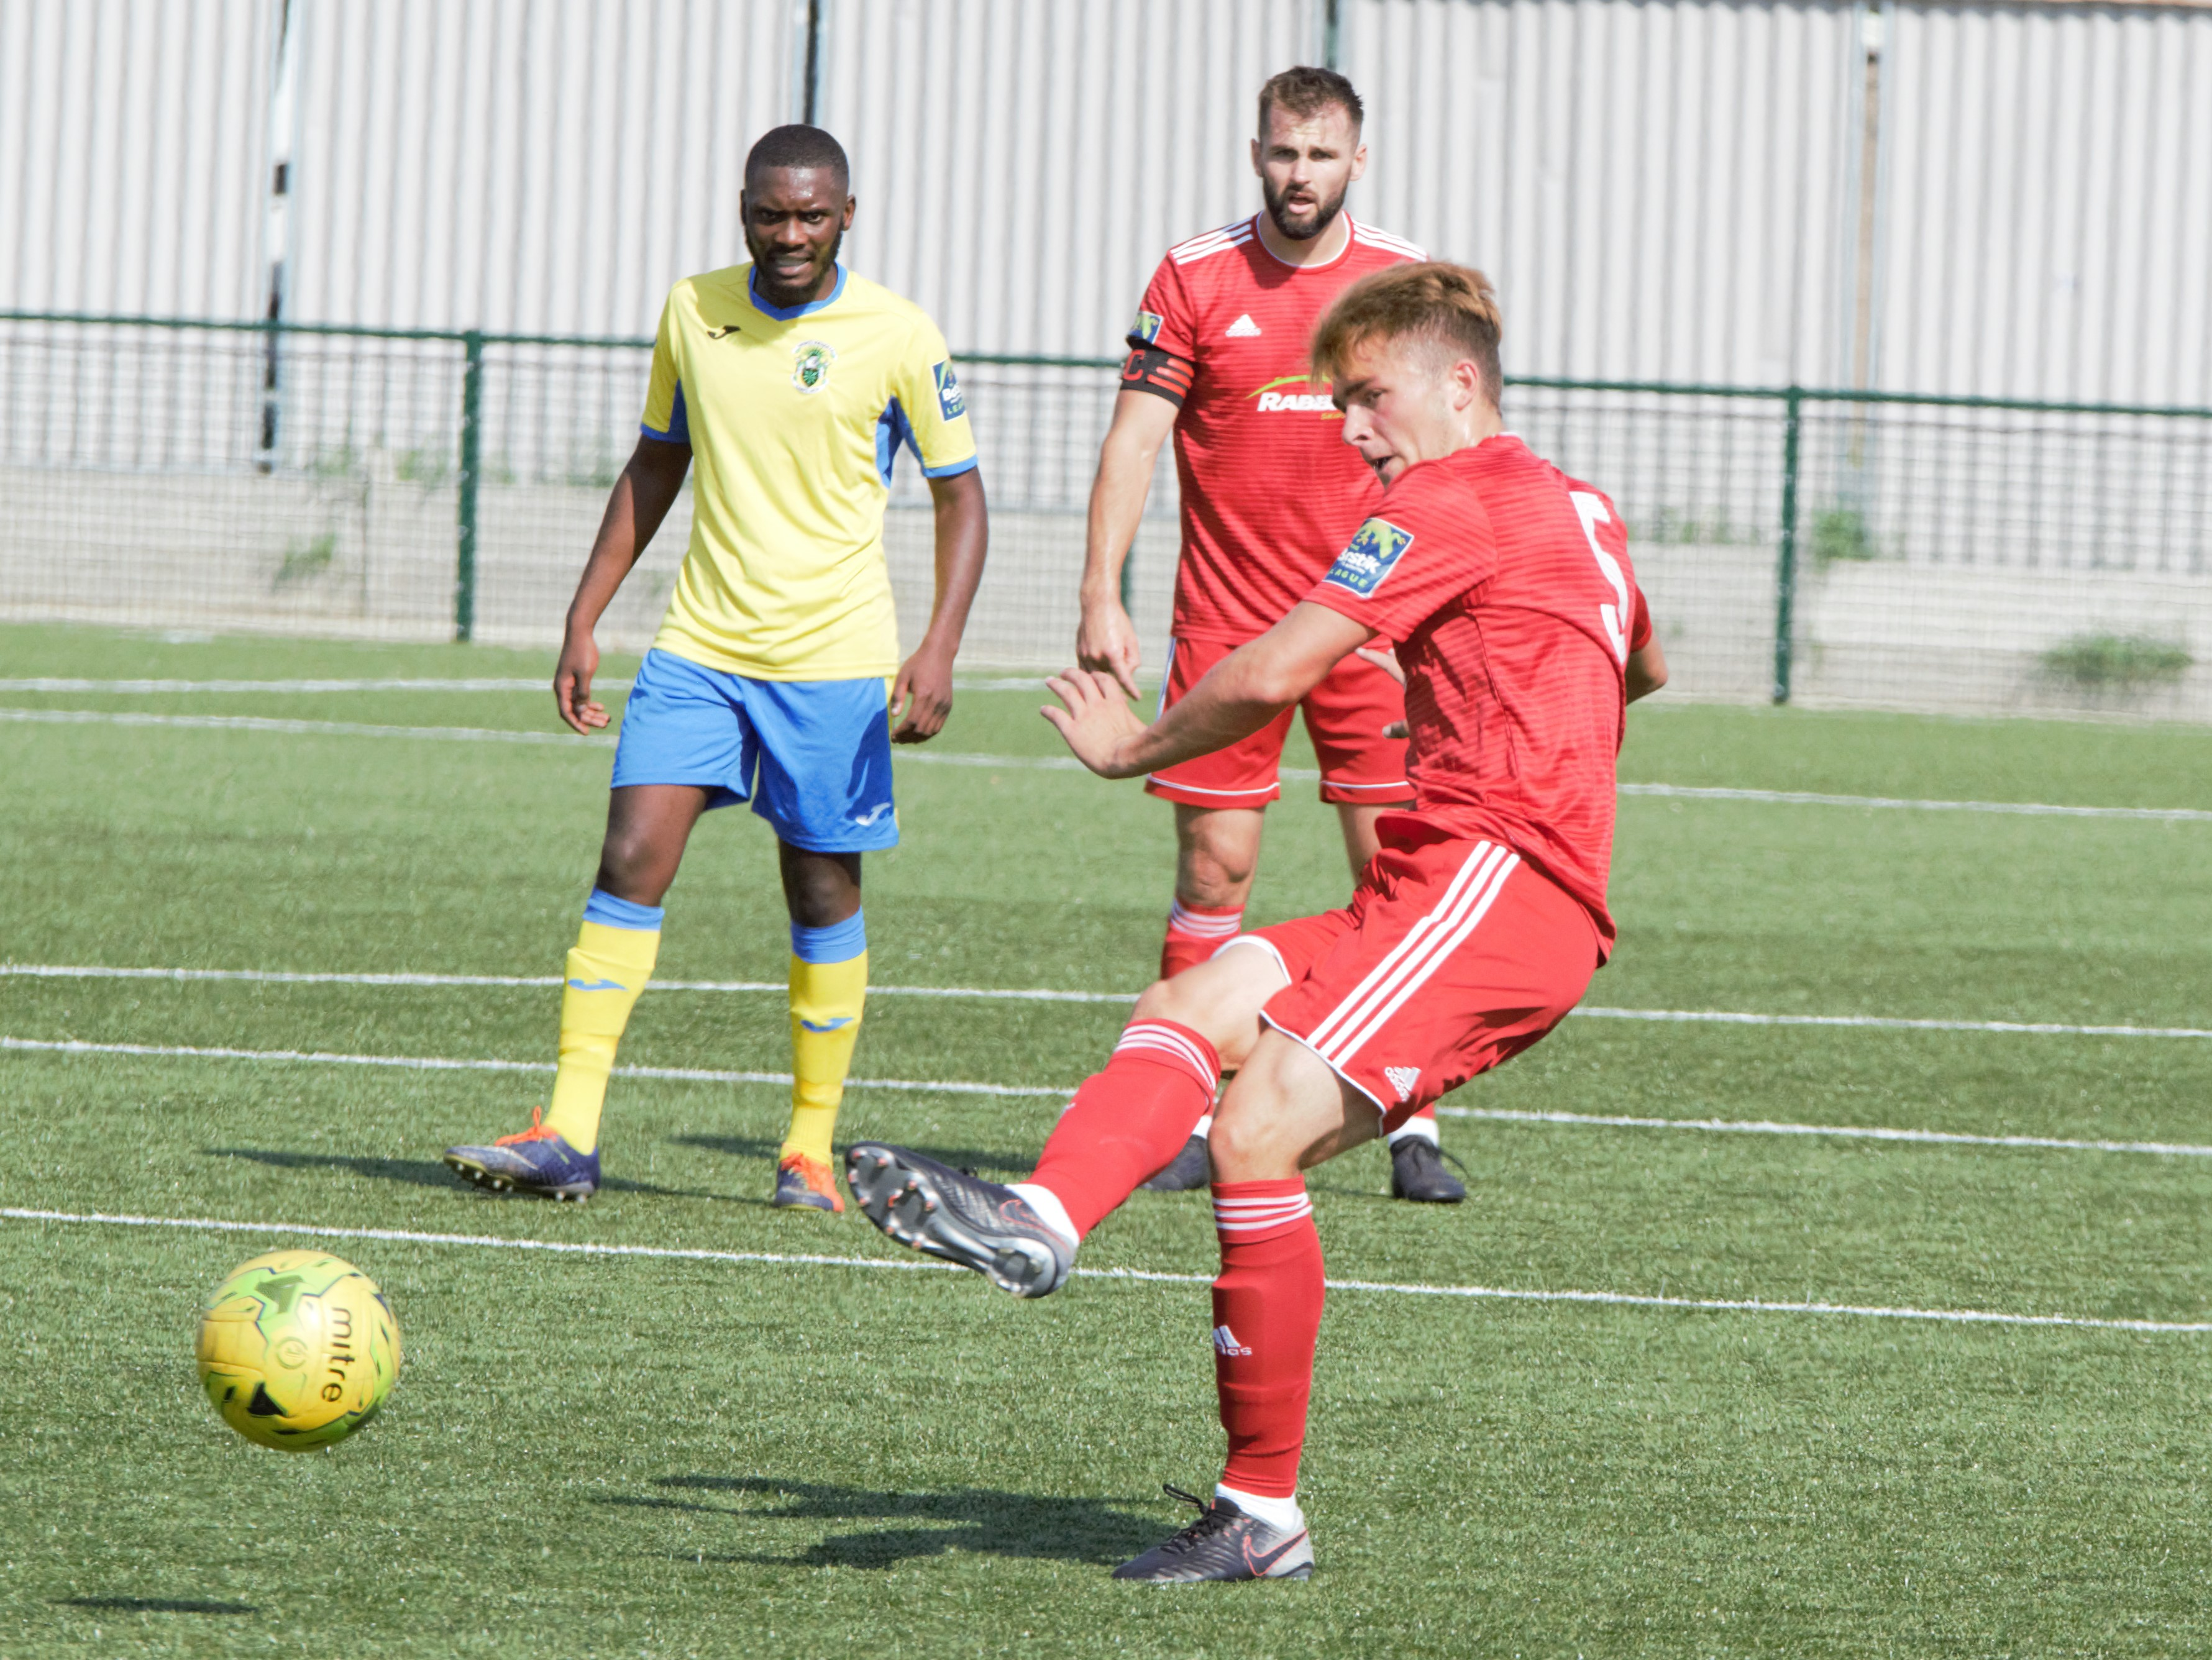 Read the full article - Ovenden aiming high after returning from long injury lay-off